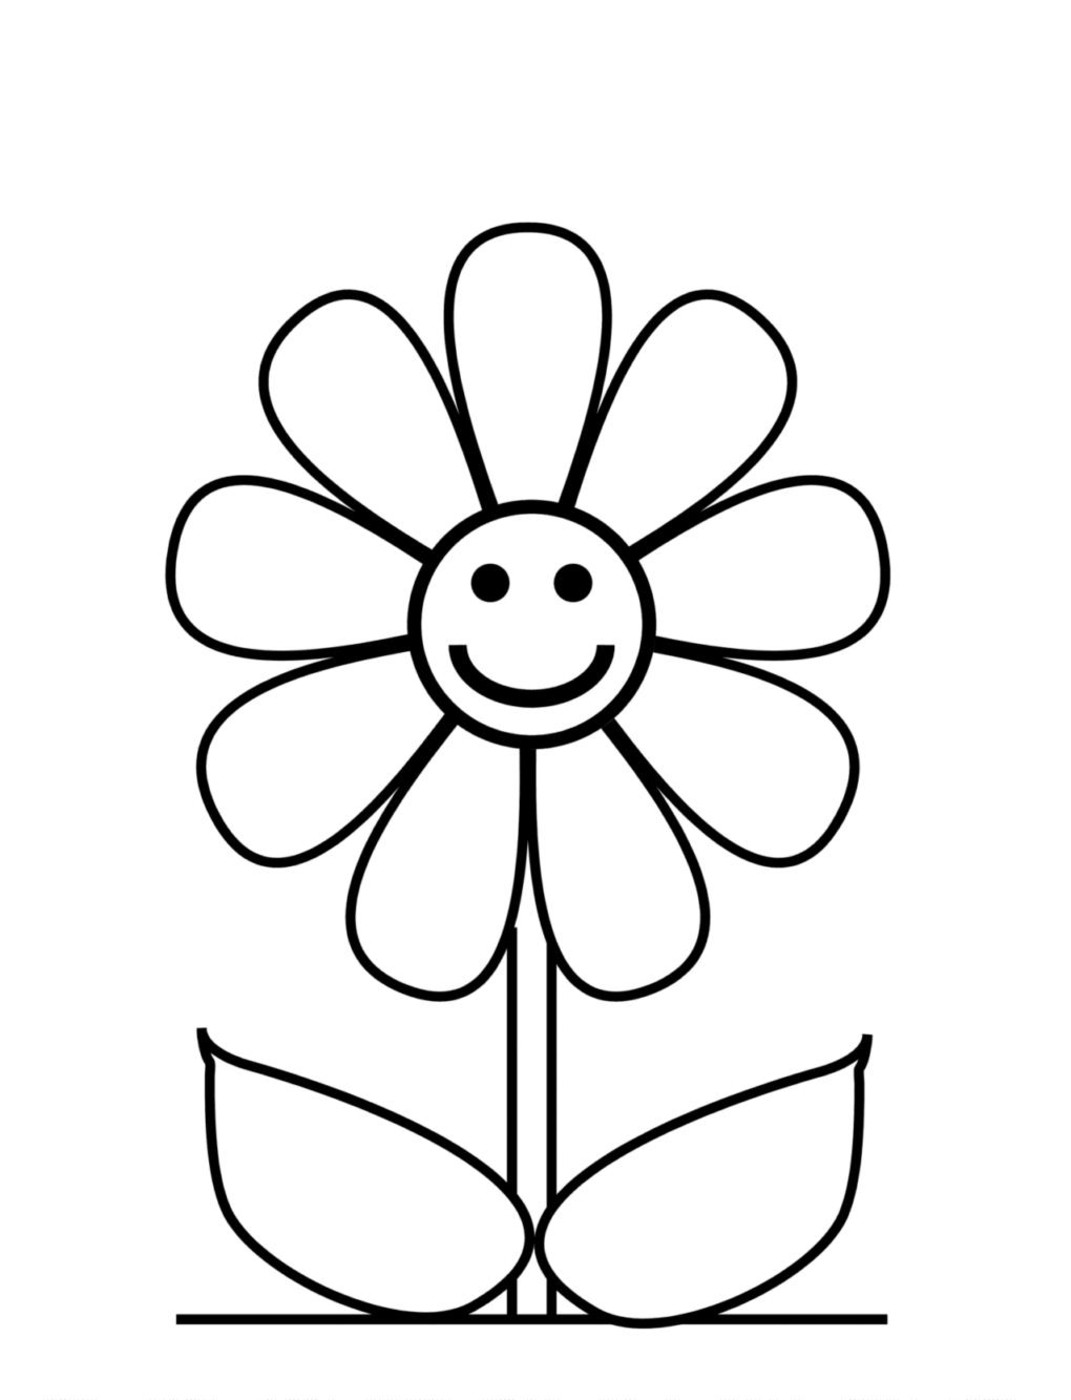 flower printable coloring pages free download to print beautiful spring flower coloring flower pages coloring printable